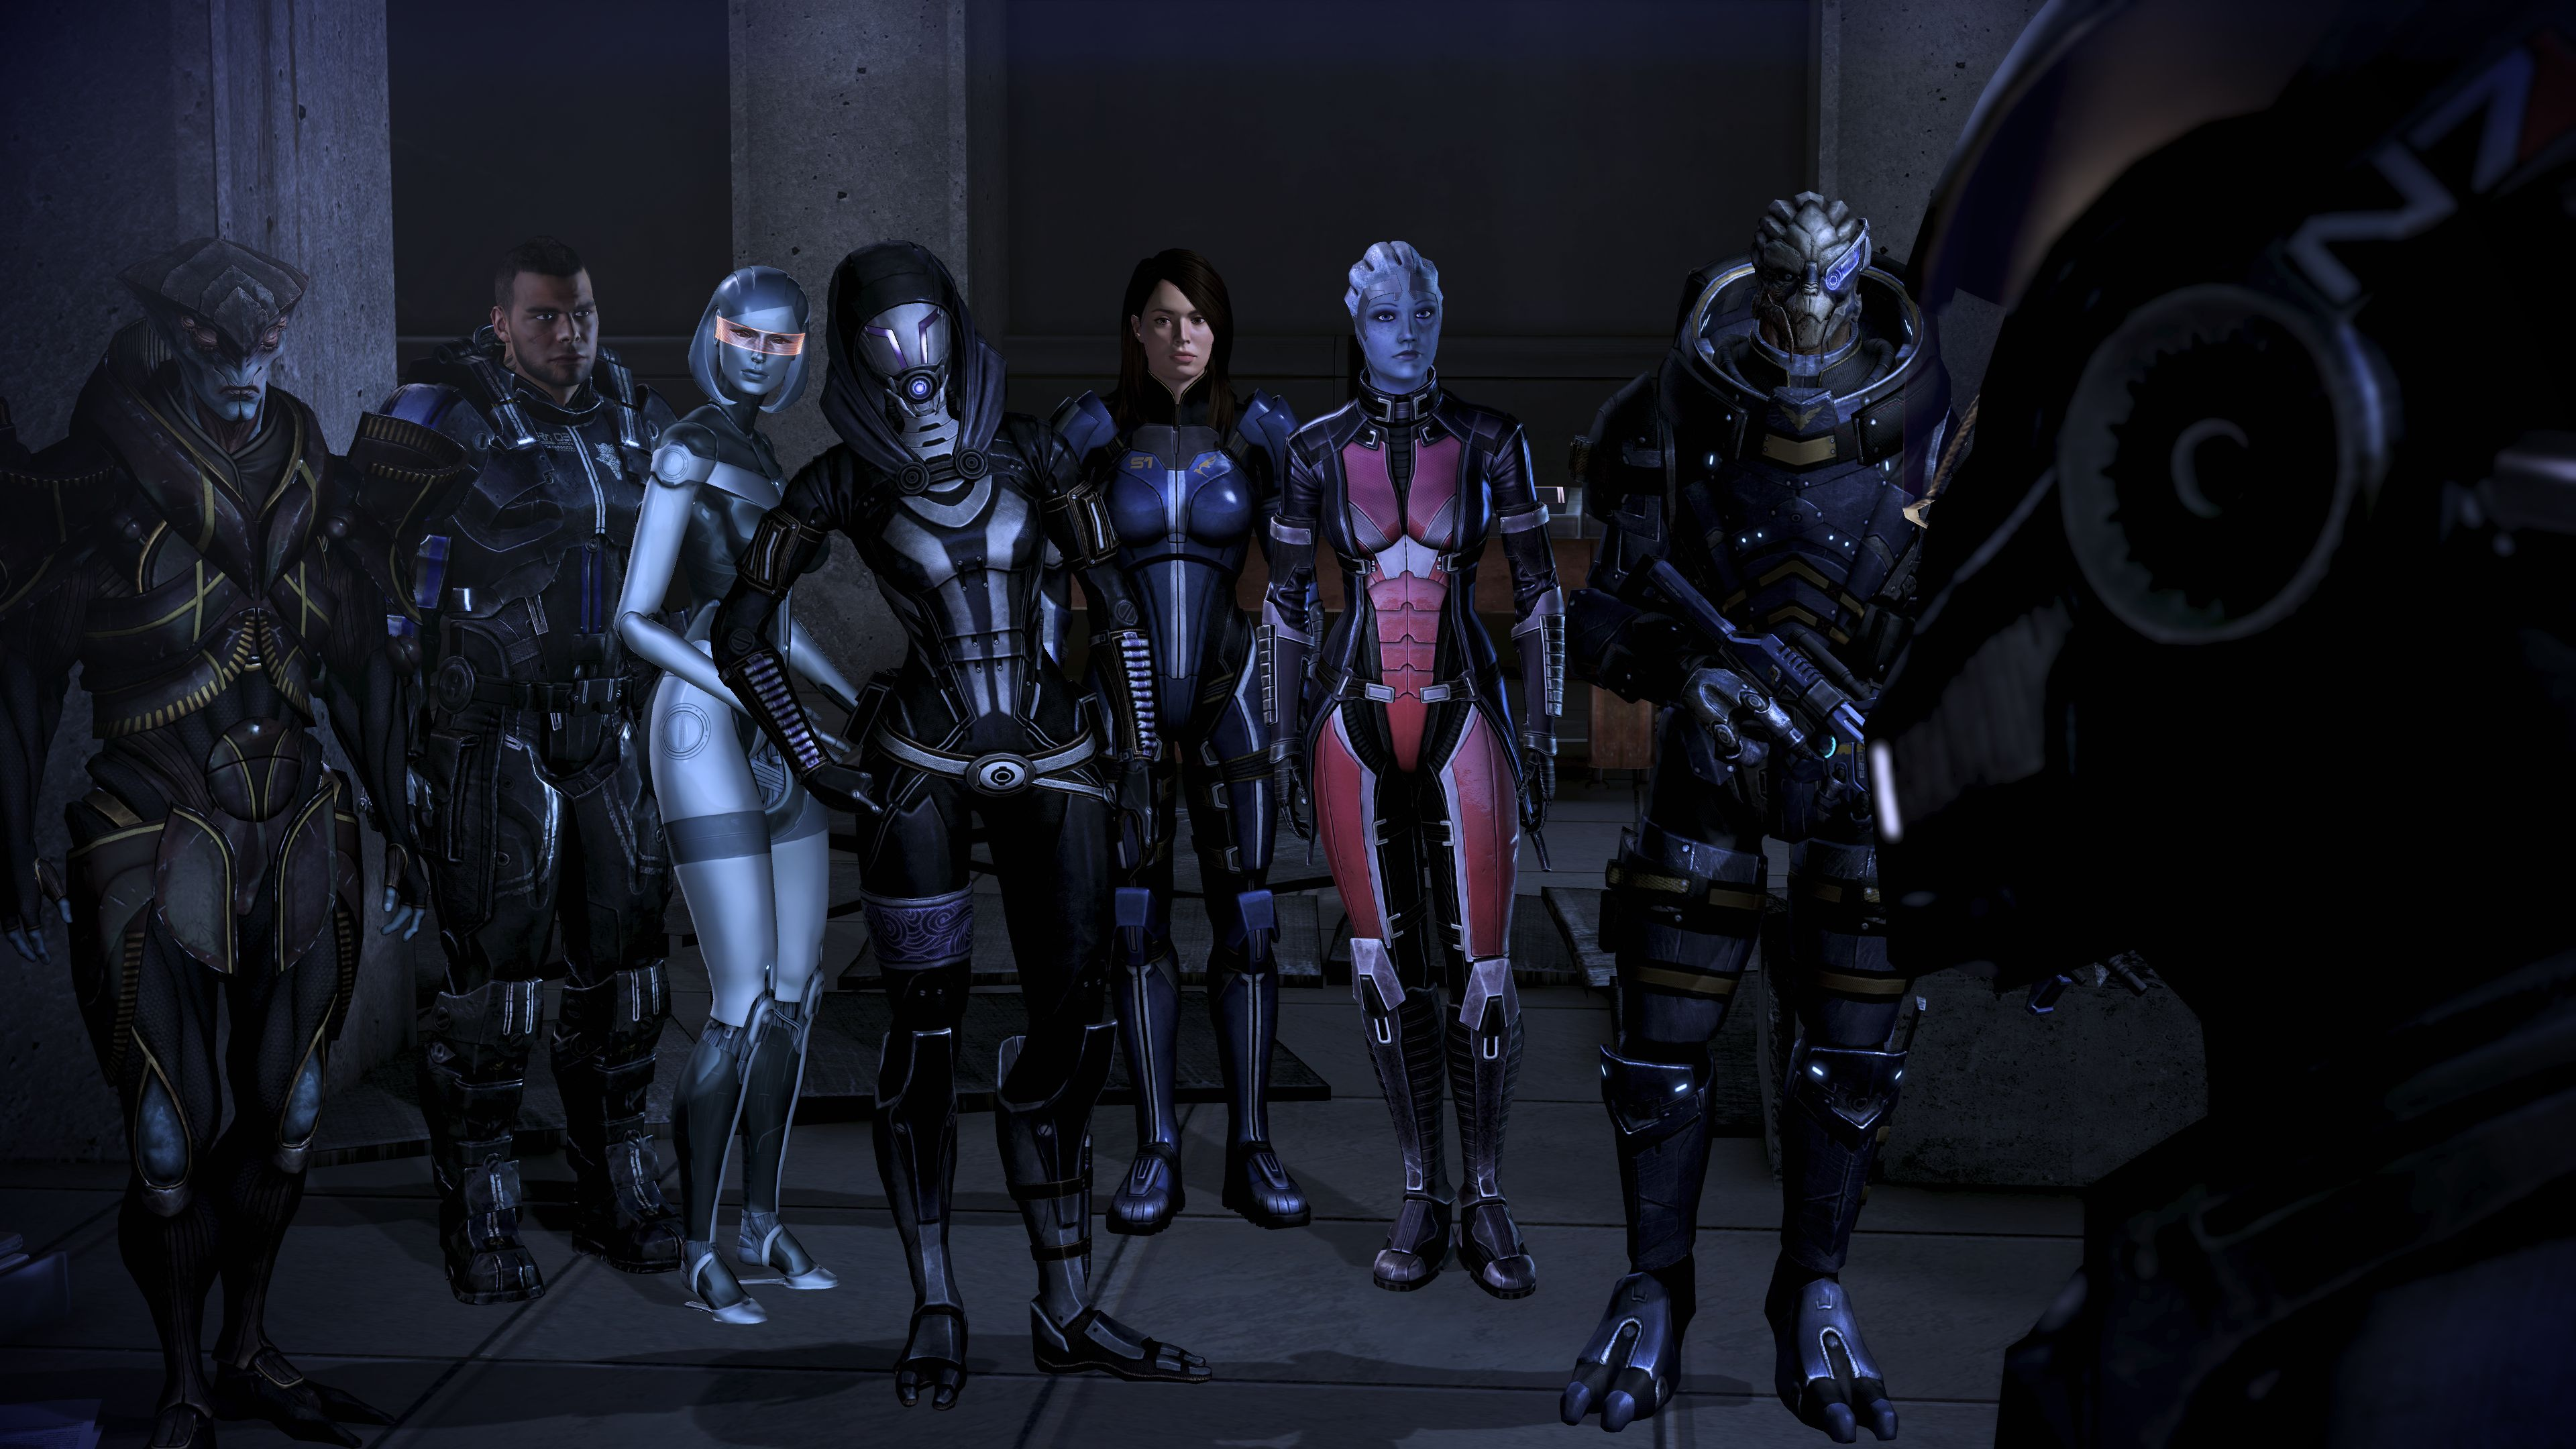 /the-best-mass-effect-3-mods-in-2021-h47z37w1 feature image